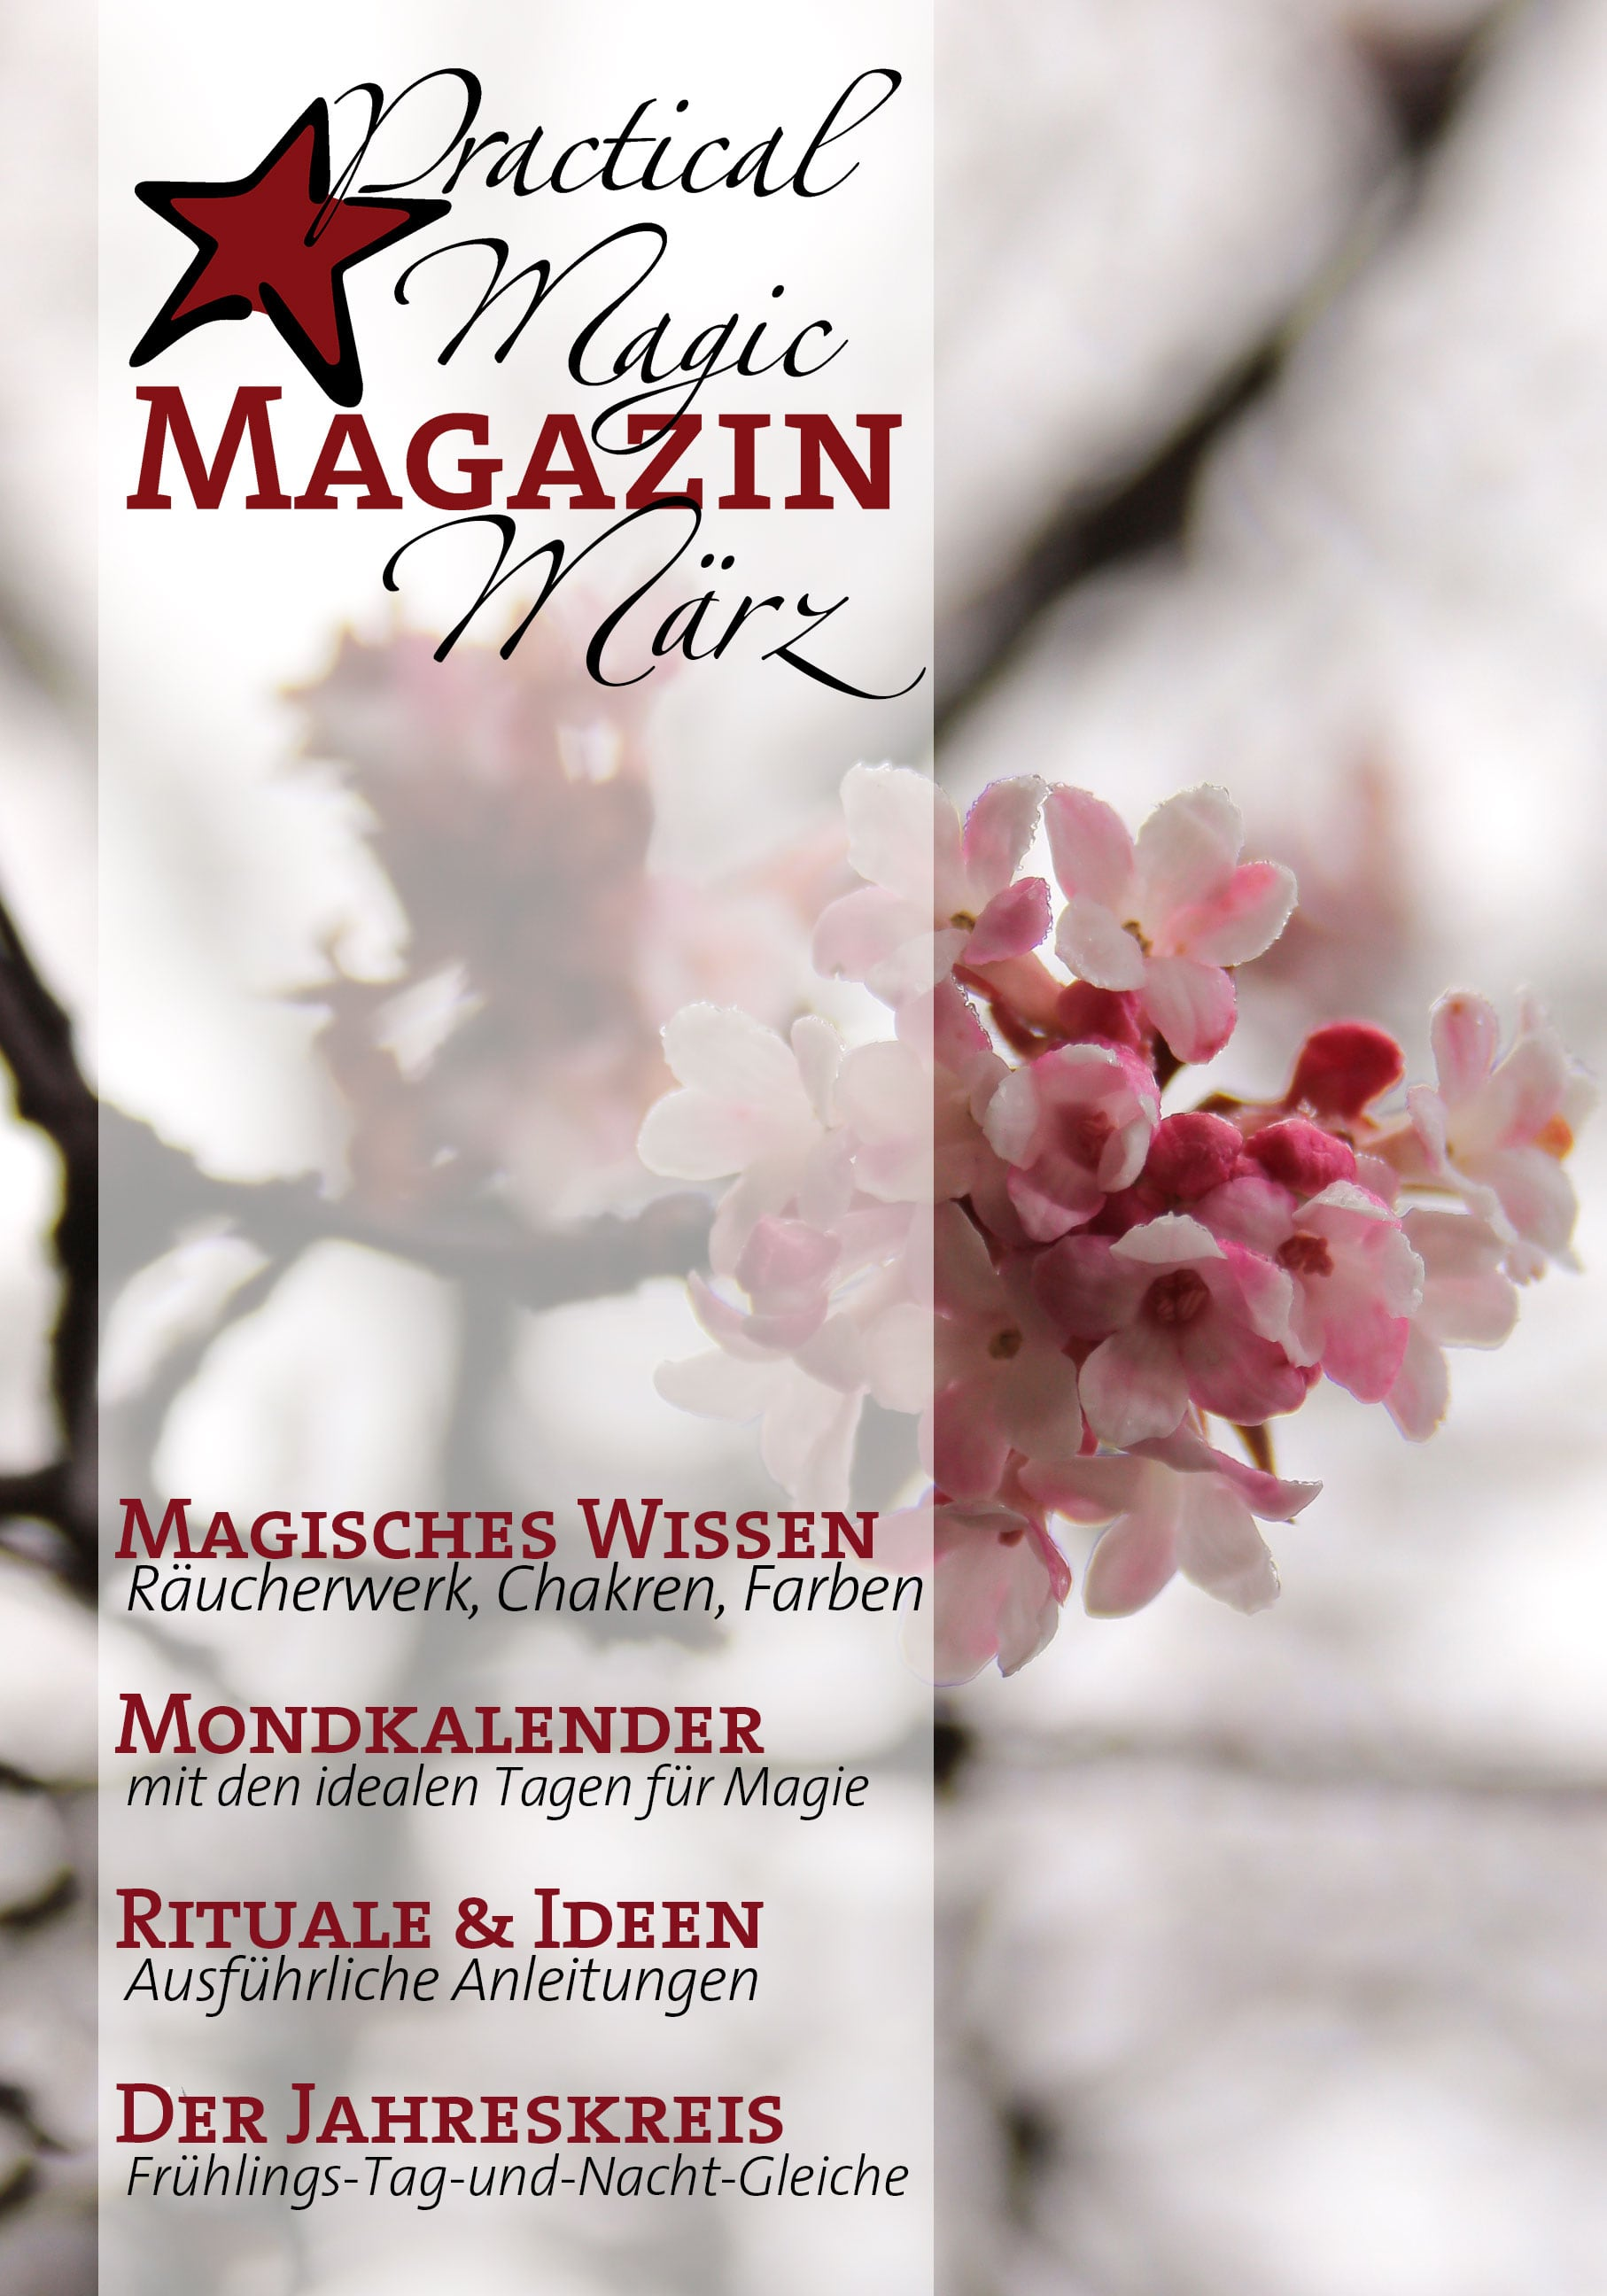 März-Ausgabe Practical Magic Magazin